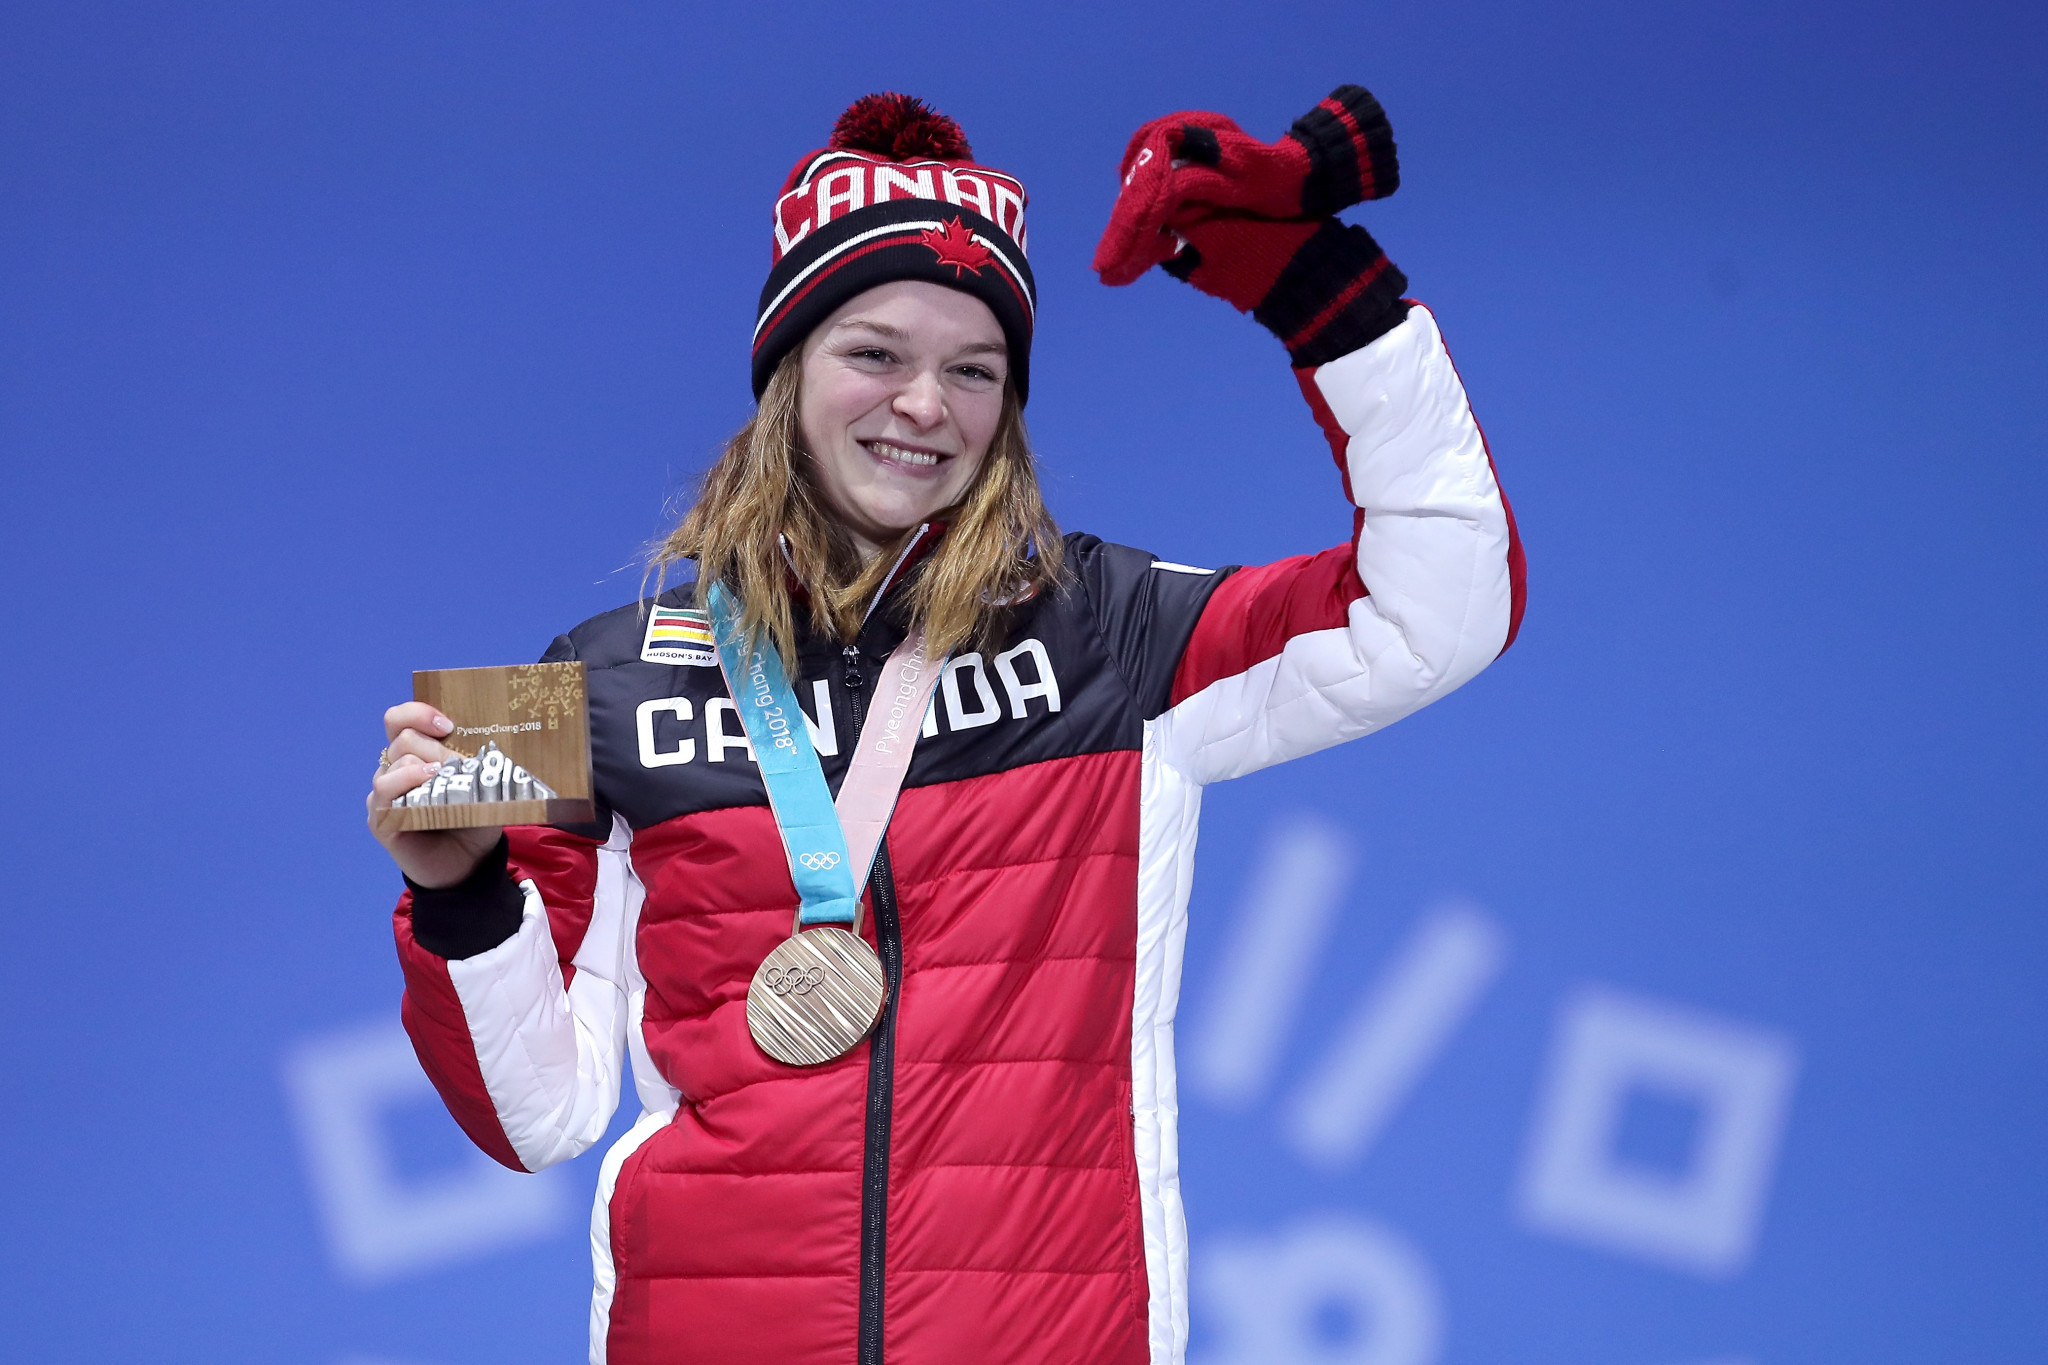 Canada's Kim Boutin was subjected to online threats after winning a medal at the expense of a disqualified South Korean in the short track speed skating at Pyeongchang 2018 ©Getty Images